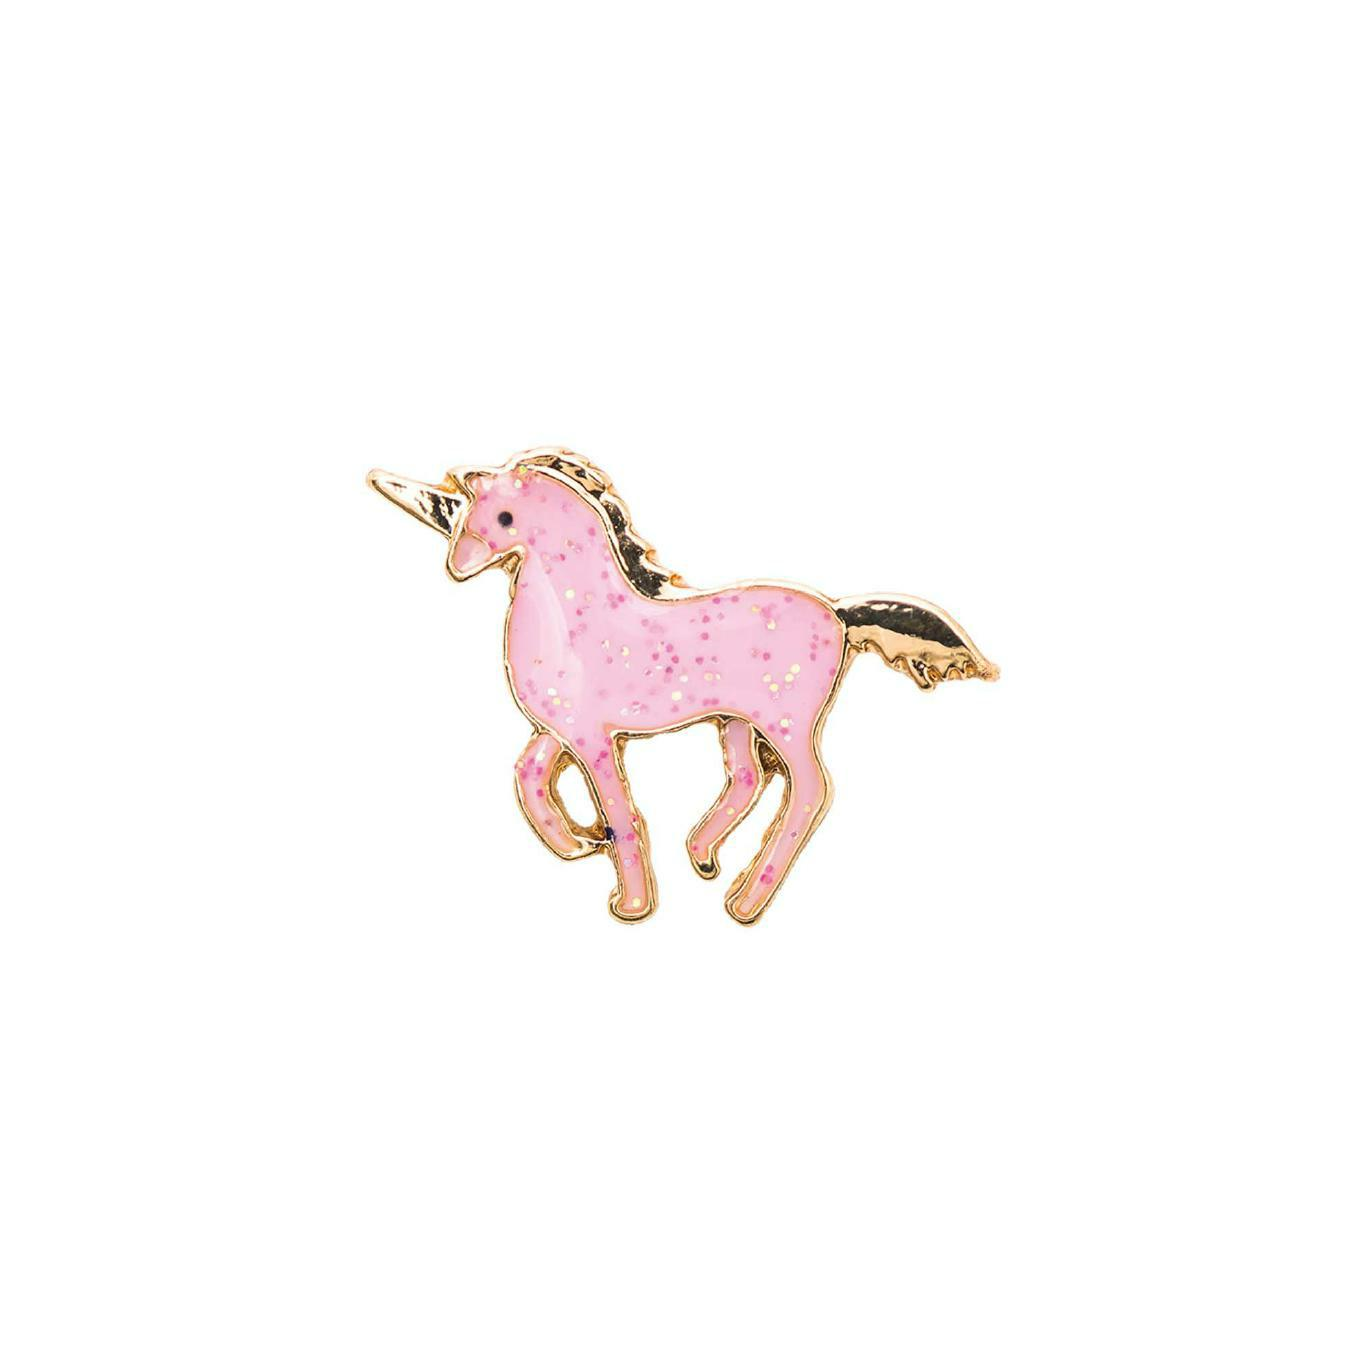 "rico - Emailbrosche/Pin - ""Pink Unicorn"" - 18x14mm"